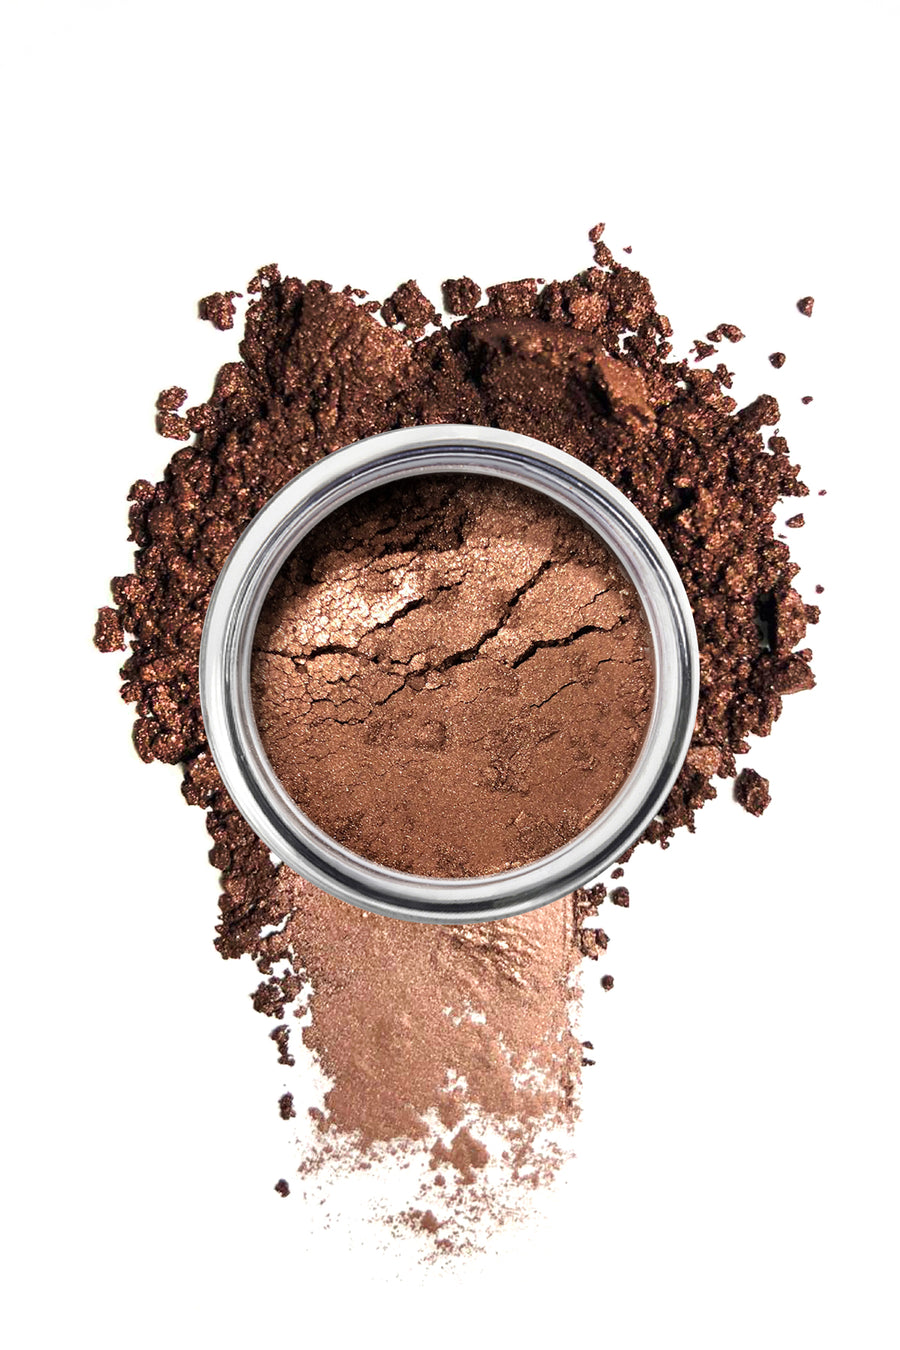 Shimmer Eyeshadow #51 - Copper Brown - Blend Mineral Cosmetics